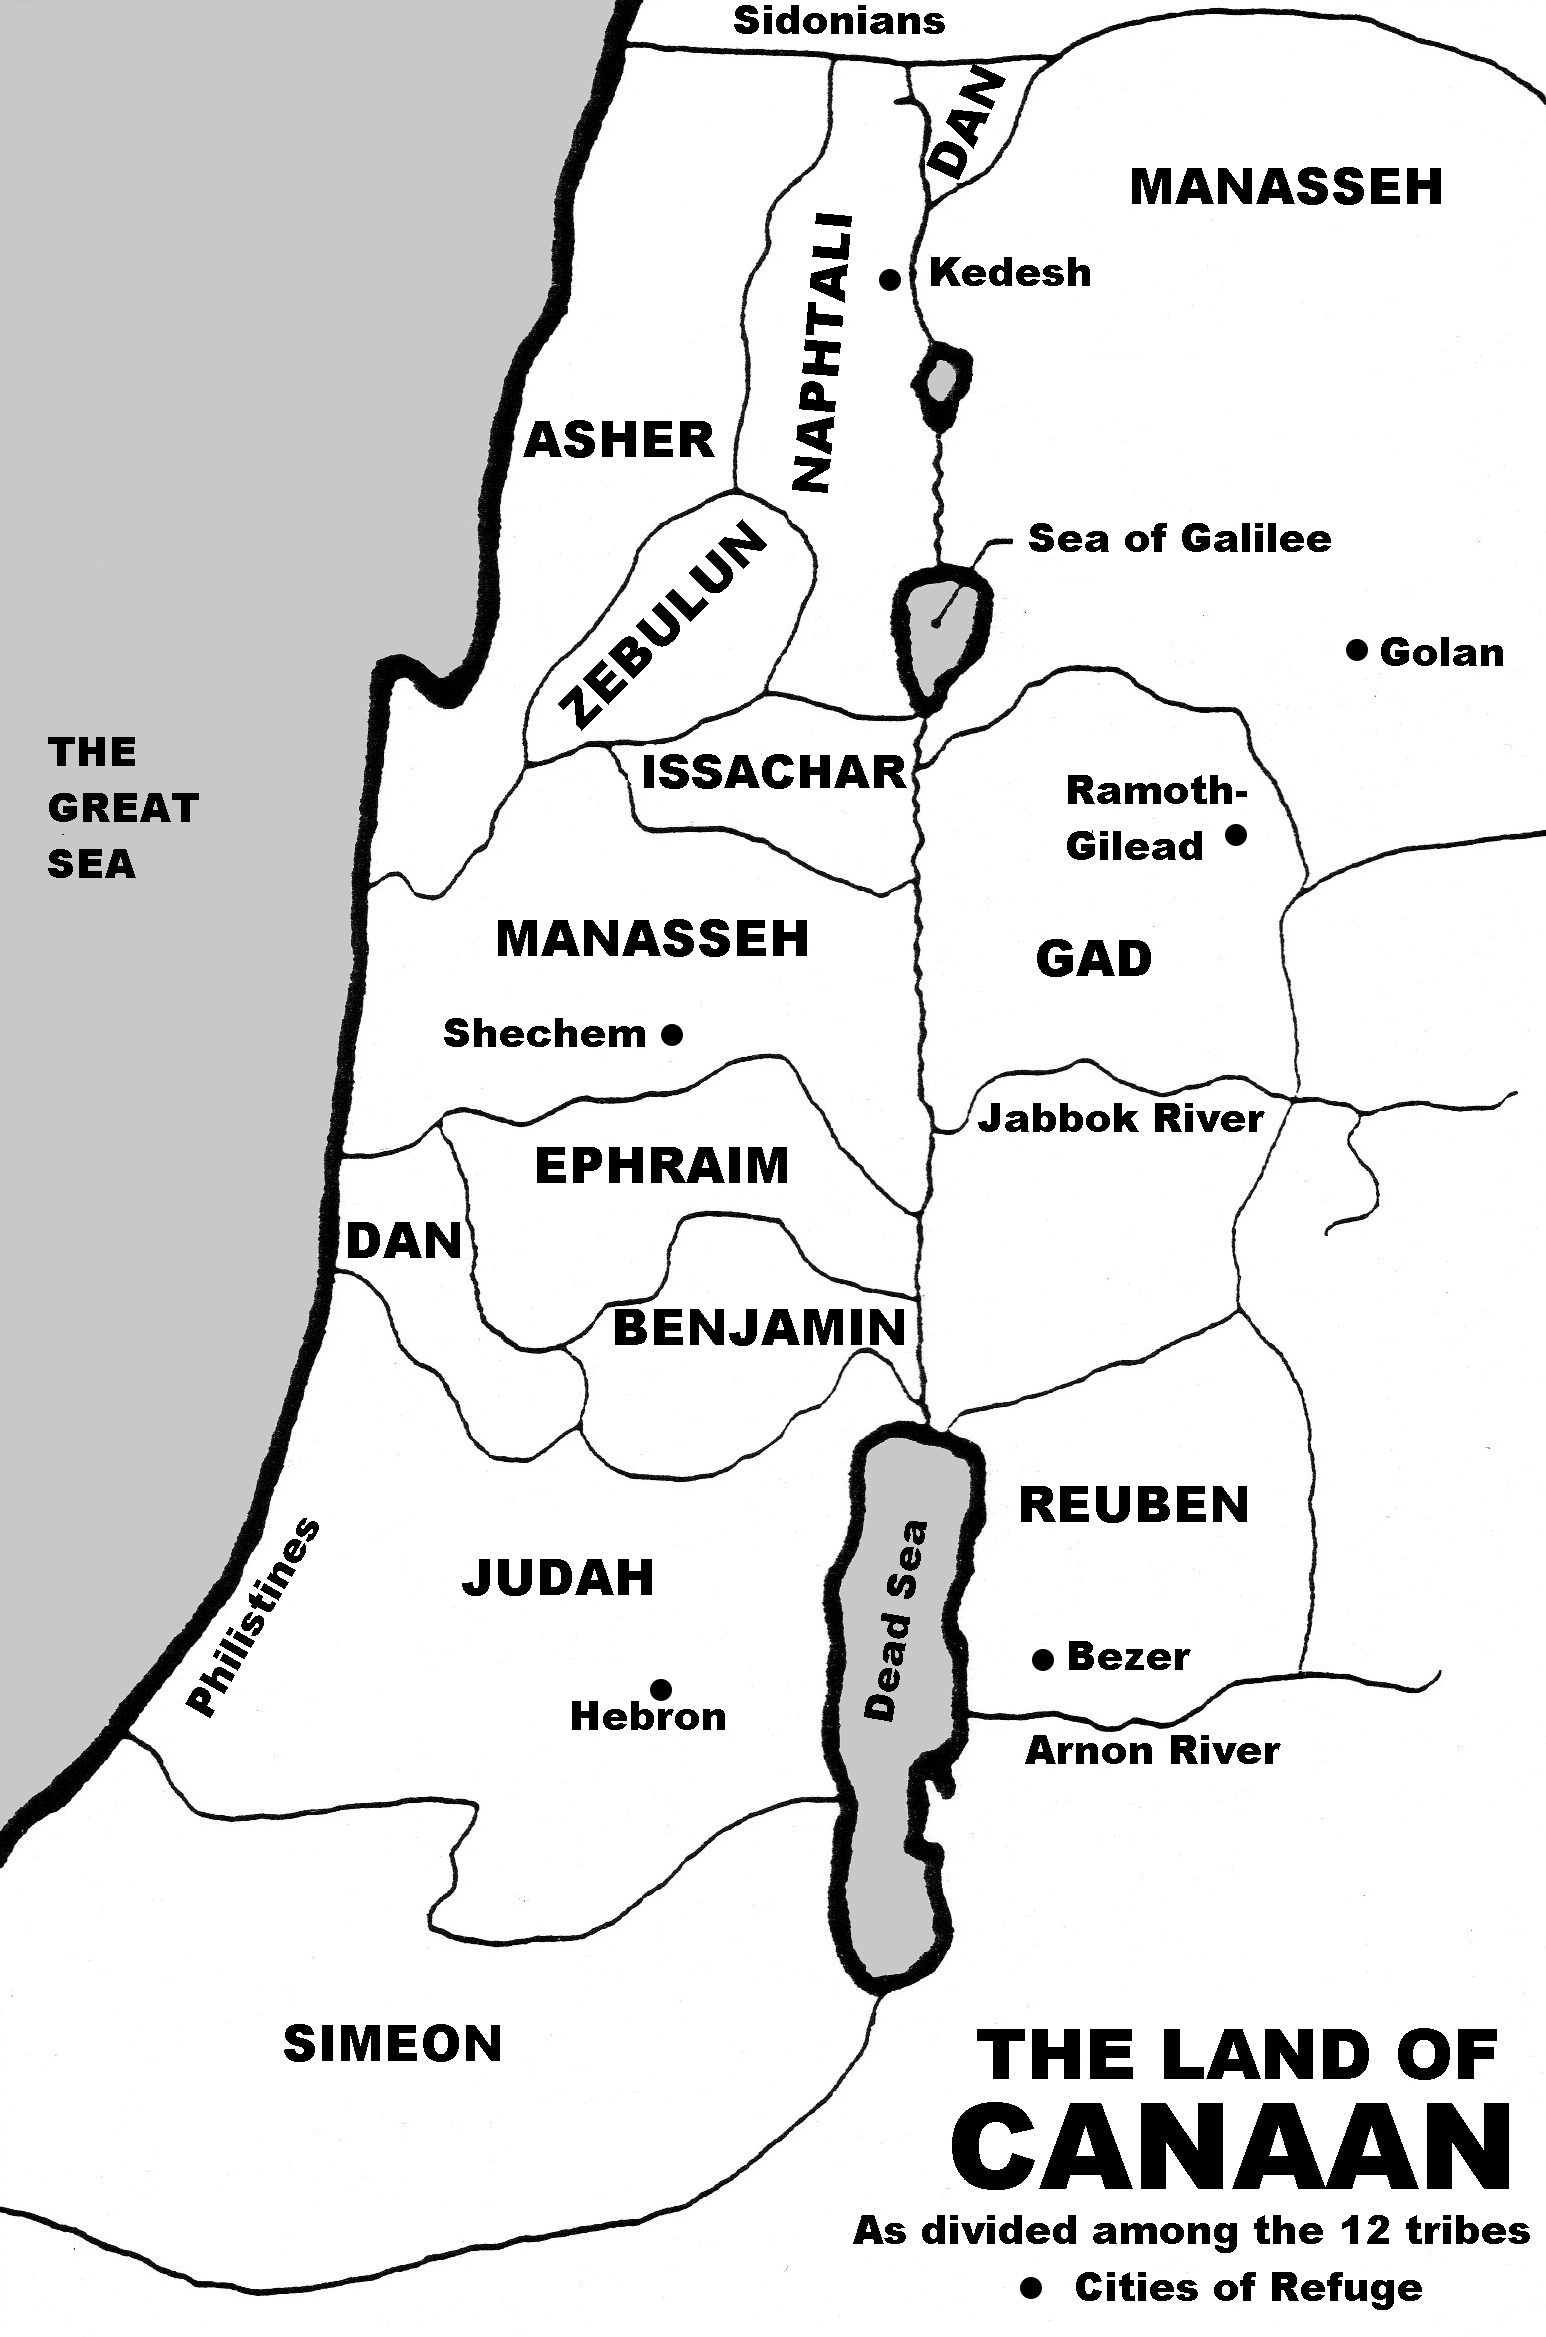 twelve spies of canaan with Dividing The Land Joshua 13 19 on Bible 12 Spies Go Into Canaan Activity in addition Dividing The Land Joshua 13 19 in addition Moses Food Water further 02 Caleb Waiting together with Numbers 191 22 The Law Of The Red Heifer.